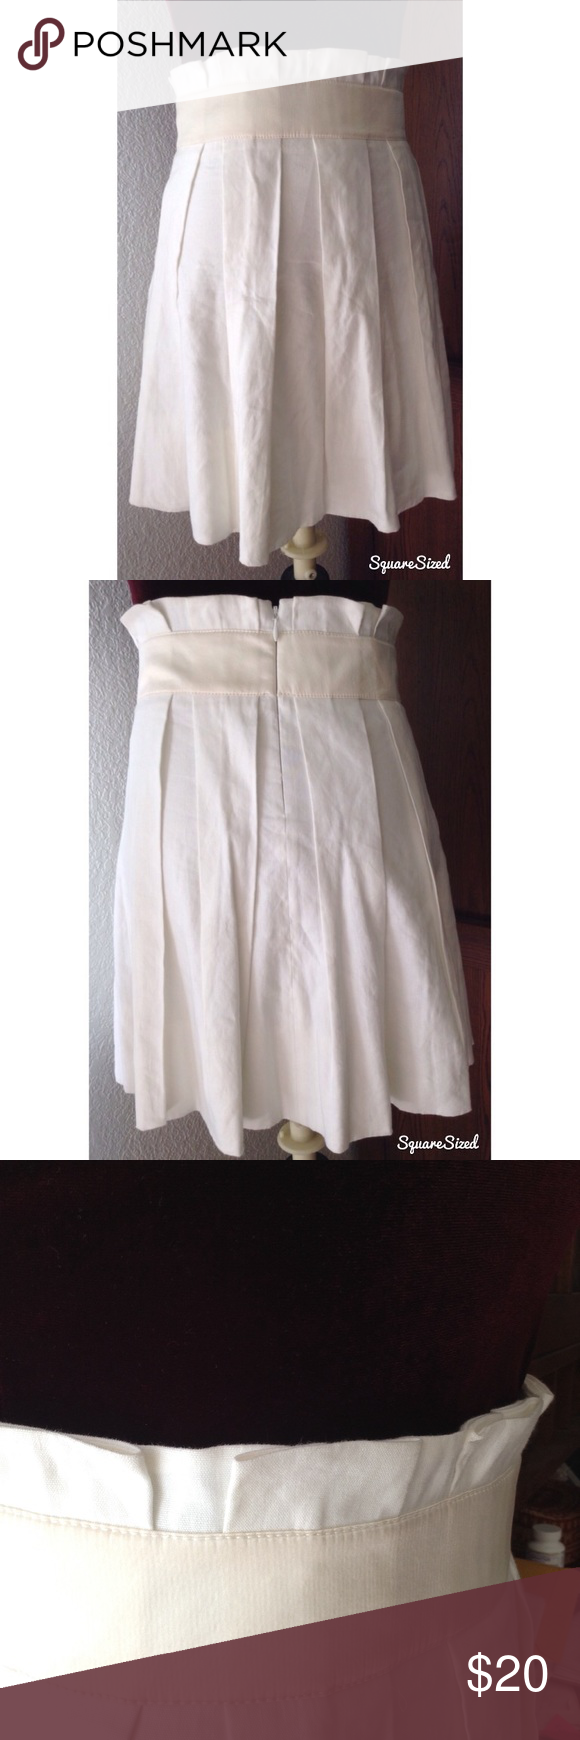 6e69b994c Bebe ivory high waisted pleated short skirt Cute linen cotton ivory off  white high rise above the knee pleated skirt with back zipper closure.satin  ...